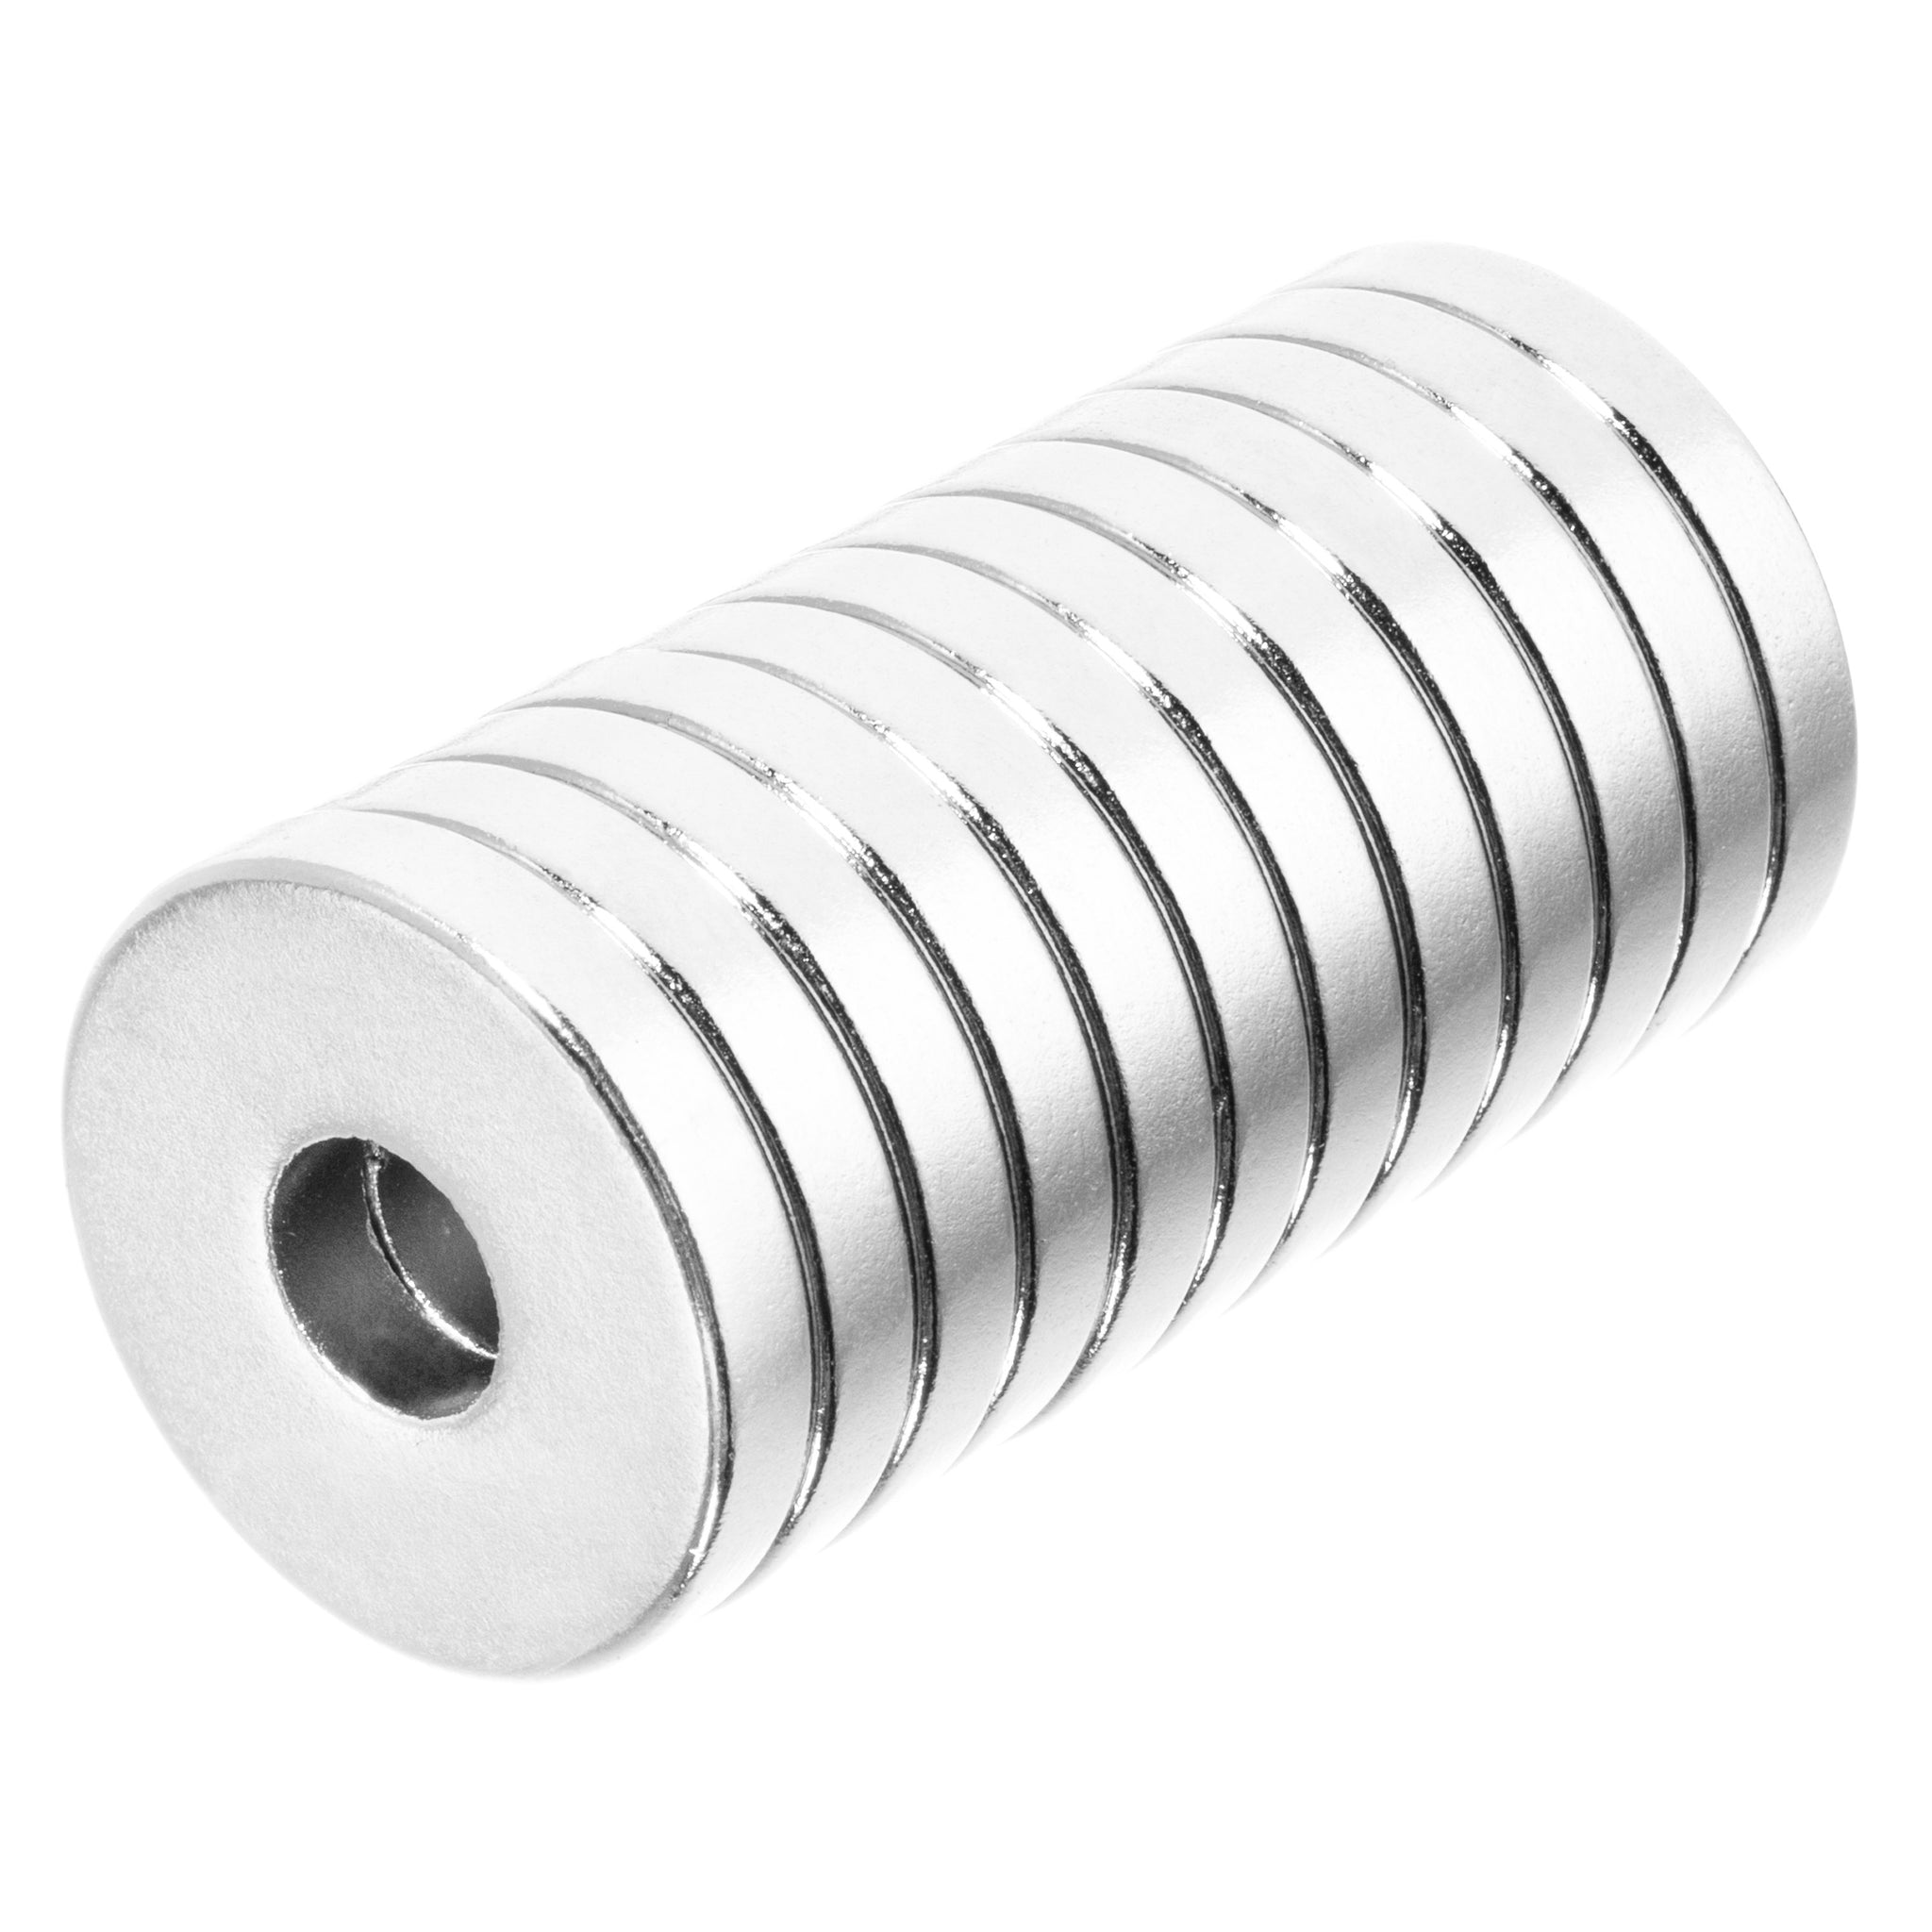 3//4 x 1//4 x 1//4 Inch Strong Neodymium Rare Earth Ring Magnets N52 6 Pack